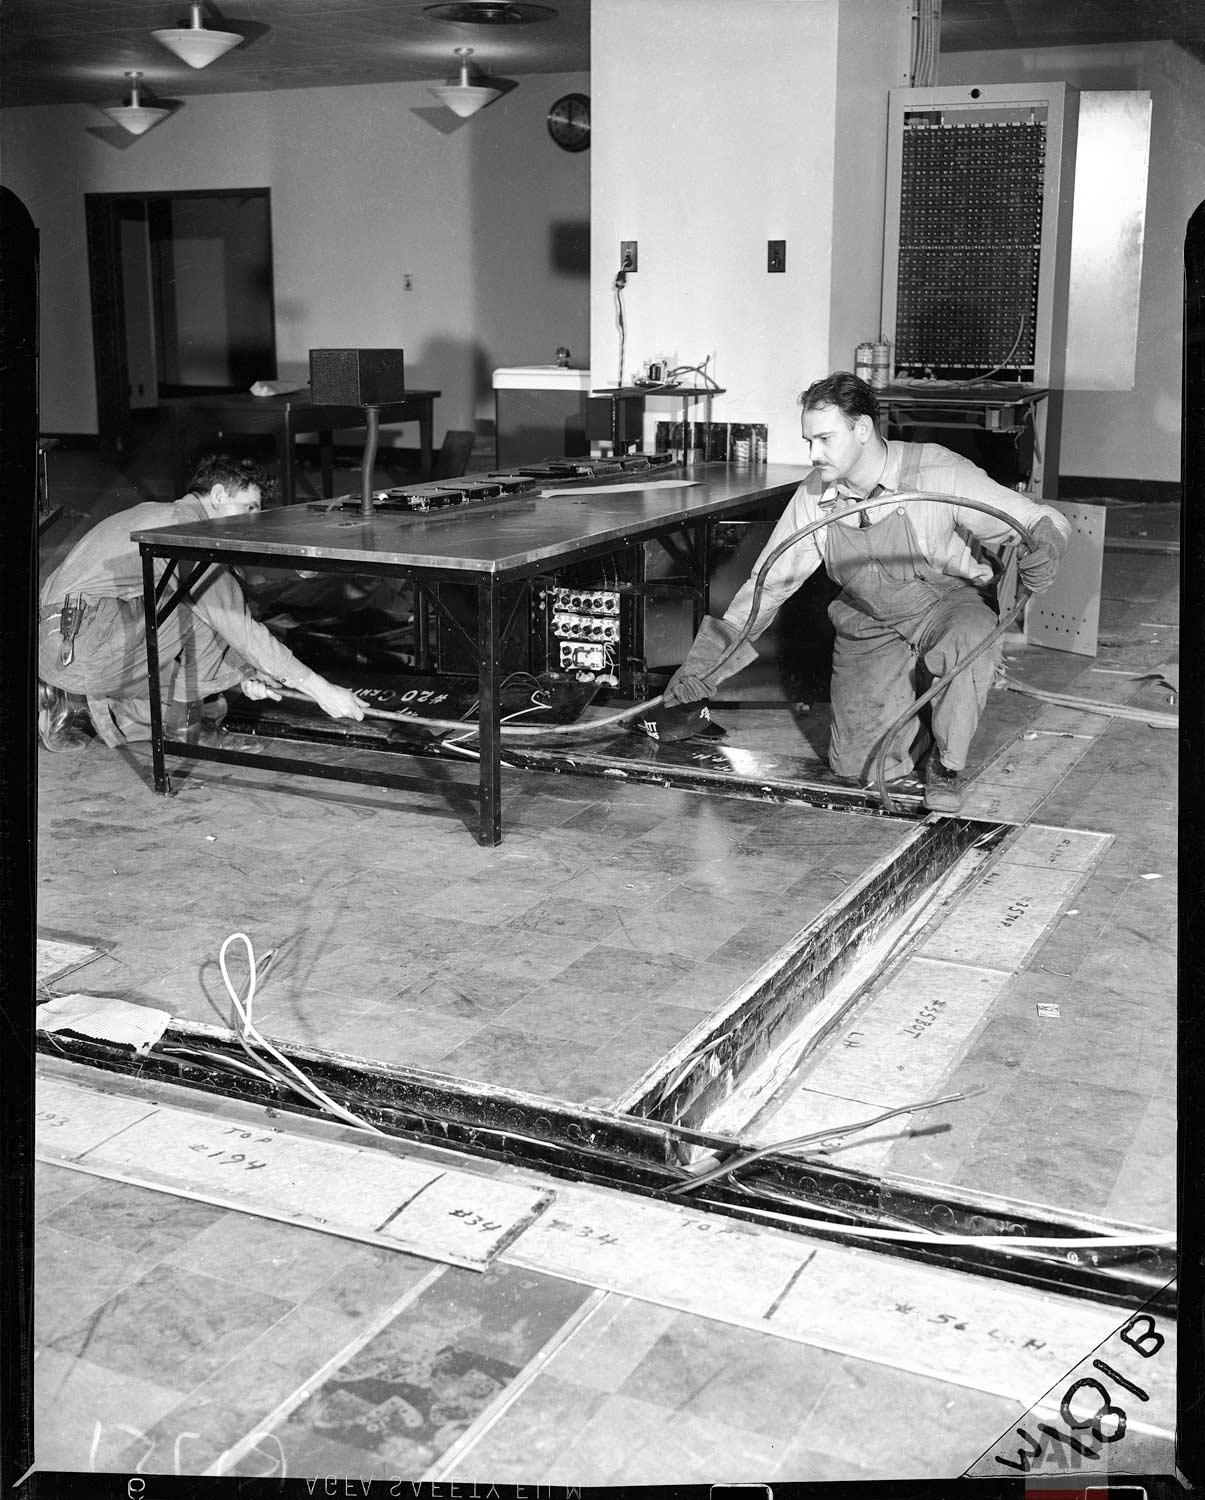 Workers lay cable in floor channels in the market department at Associated Press in the new AP building at Rockefeller Center, New York, in 1938. The market department switchboard and main market operating table are shown.(AP Photo/Corporate Archives)